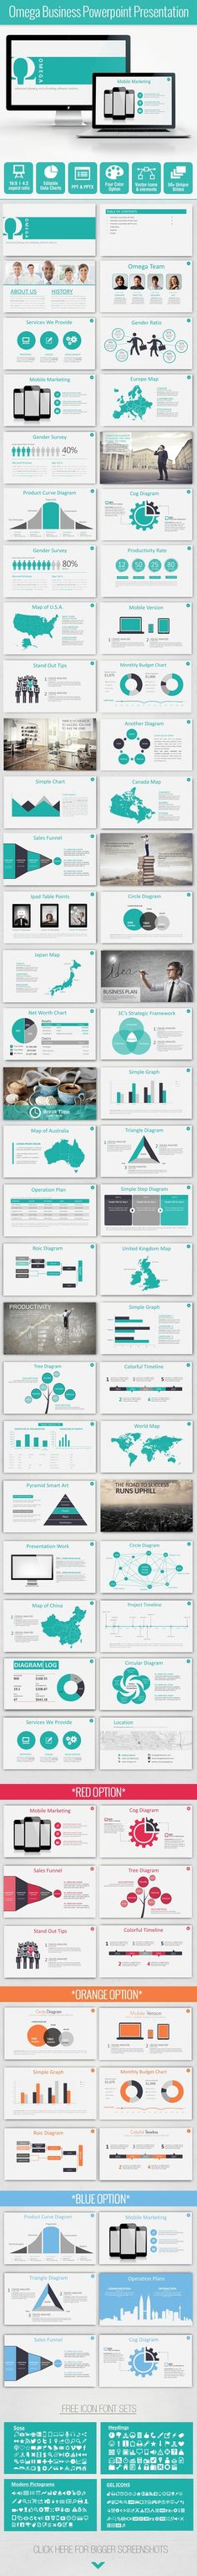 Omega Bussiness Powerpoint Template - PowerPoint Templates Presentation Templates